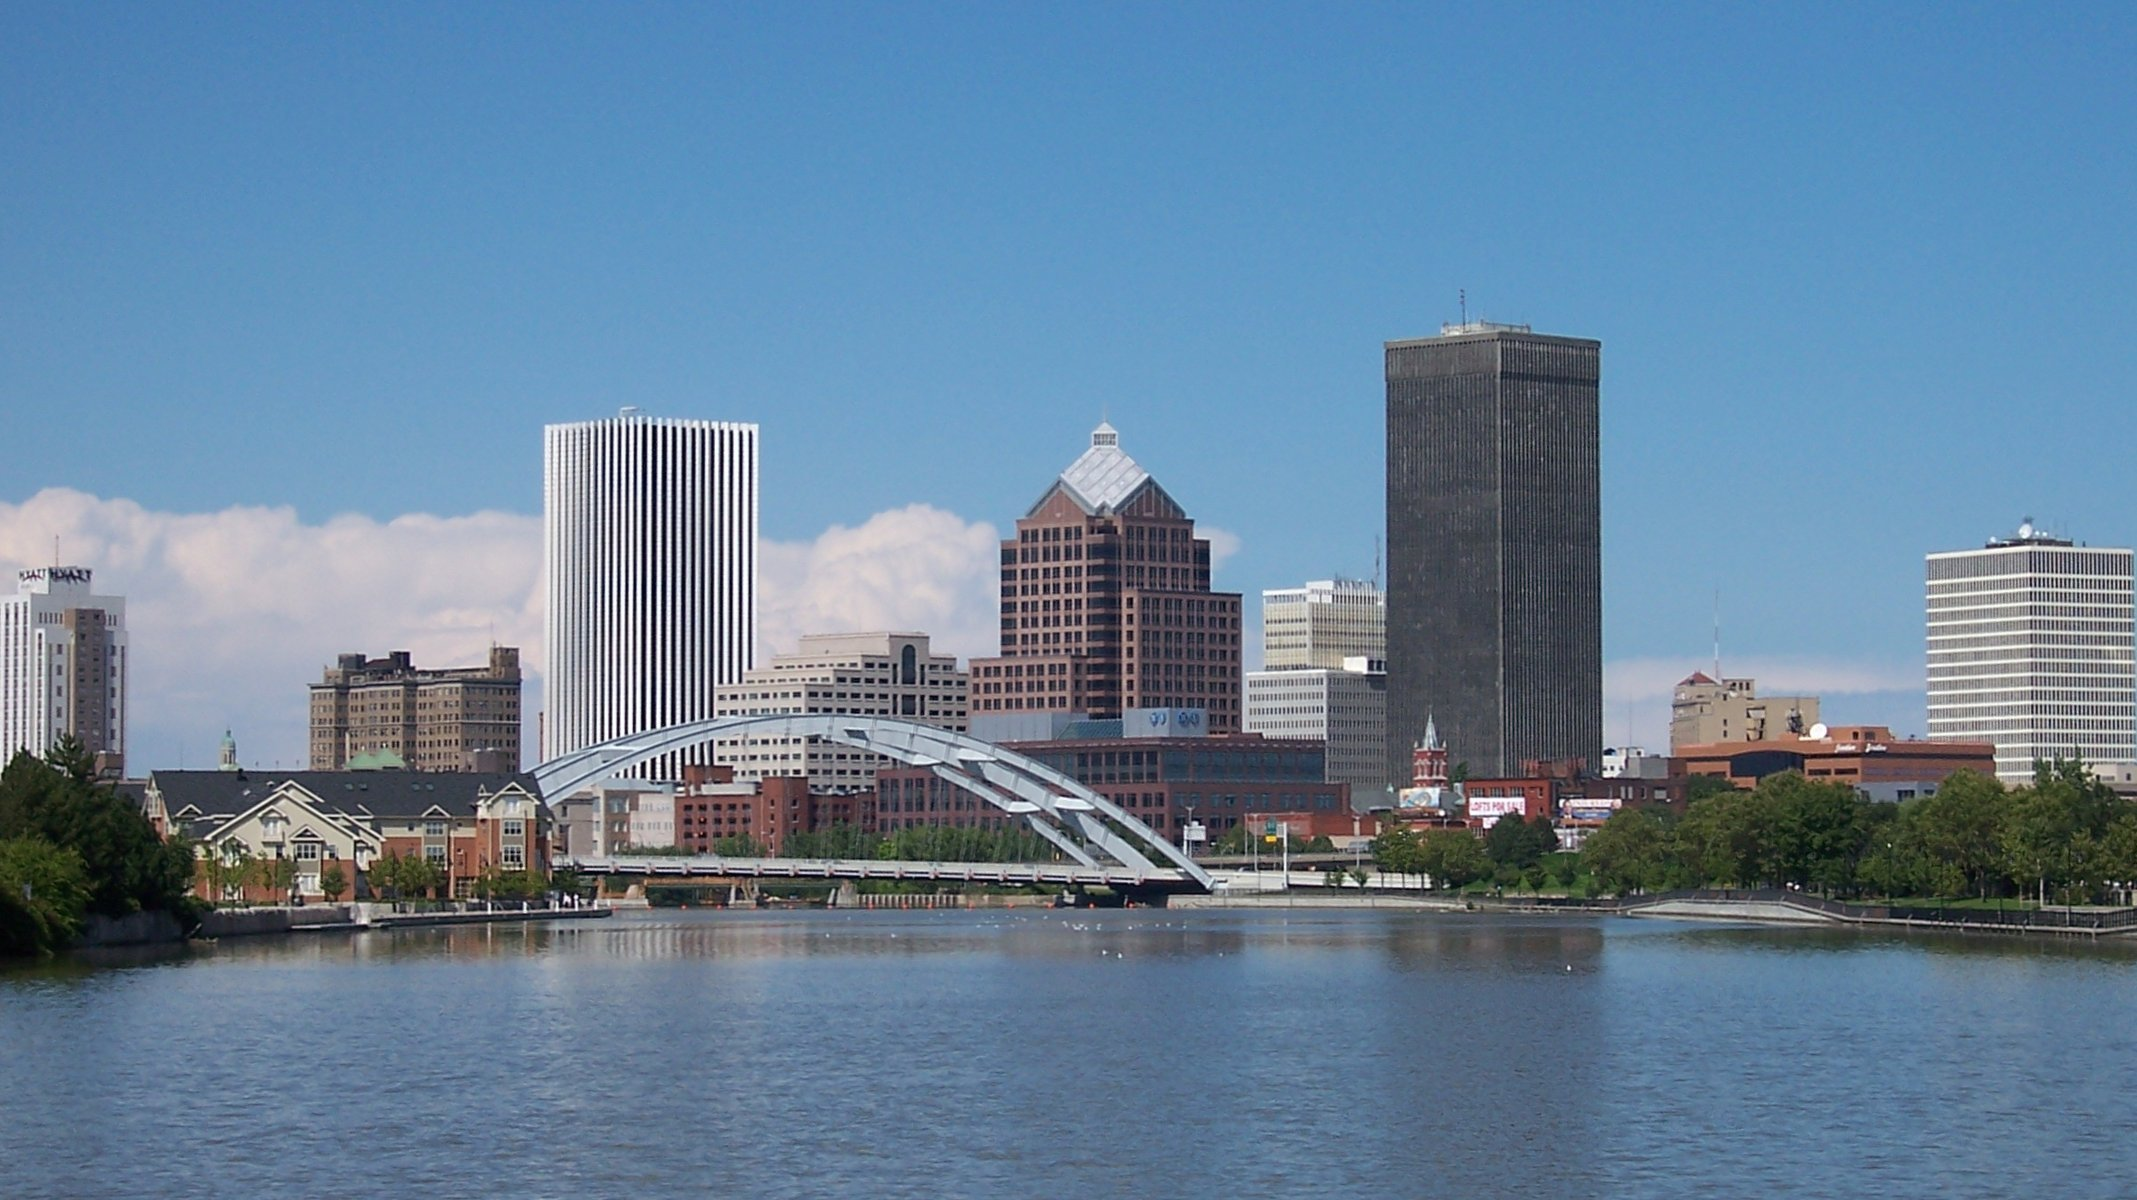 The Frederick Douglass-Susan B. Anthony Memorial Bridge takes center stage in the Rochester skyline. Picture by Theresa Marconi